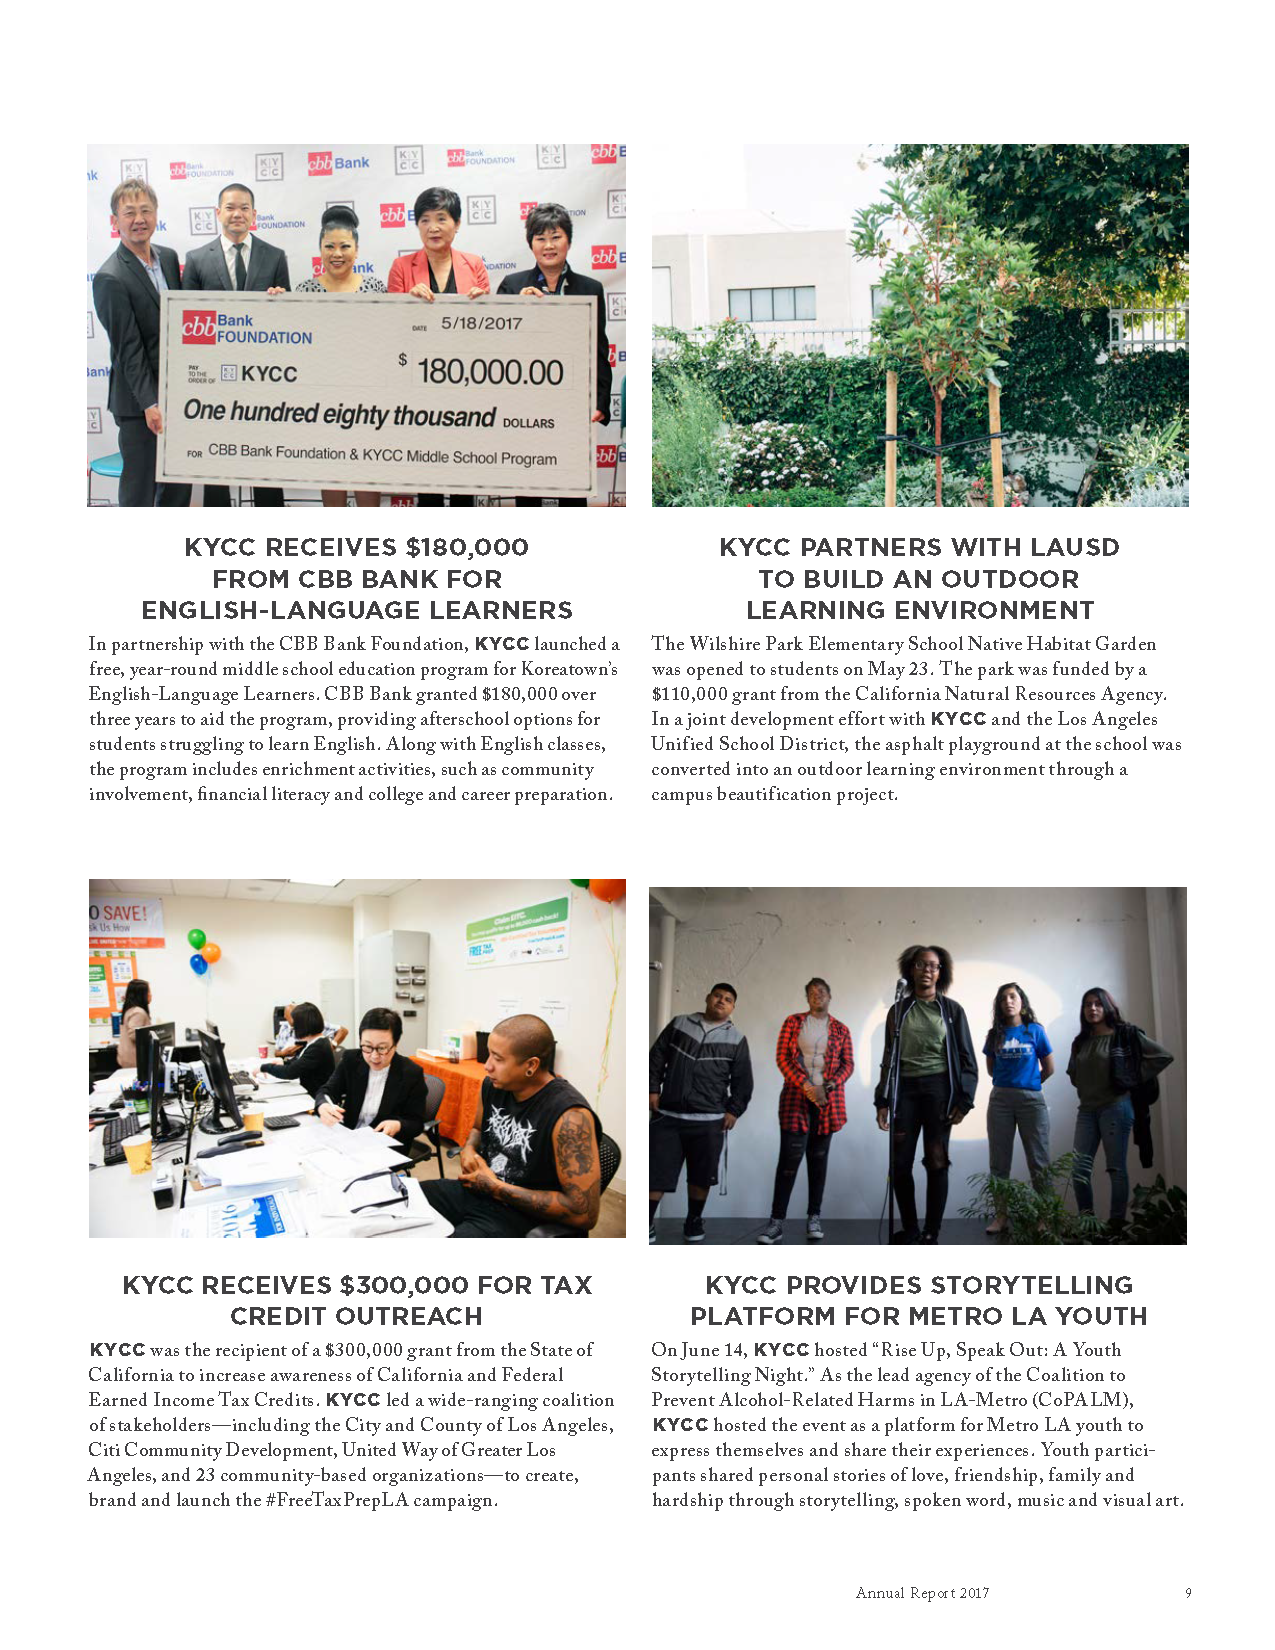 KYCC_Annual-Report-2016-2017-sm_Page_09.png